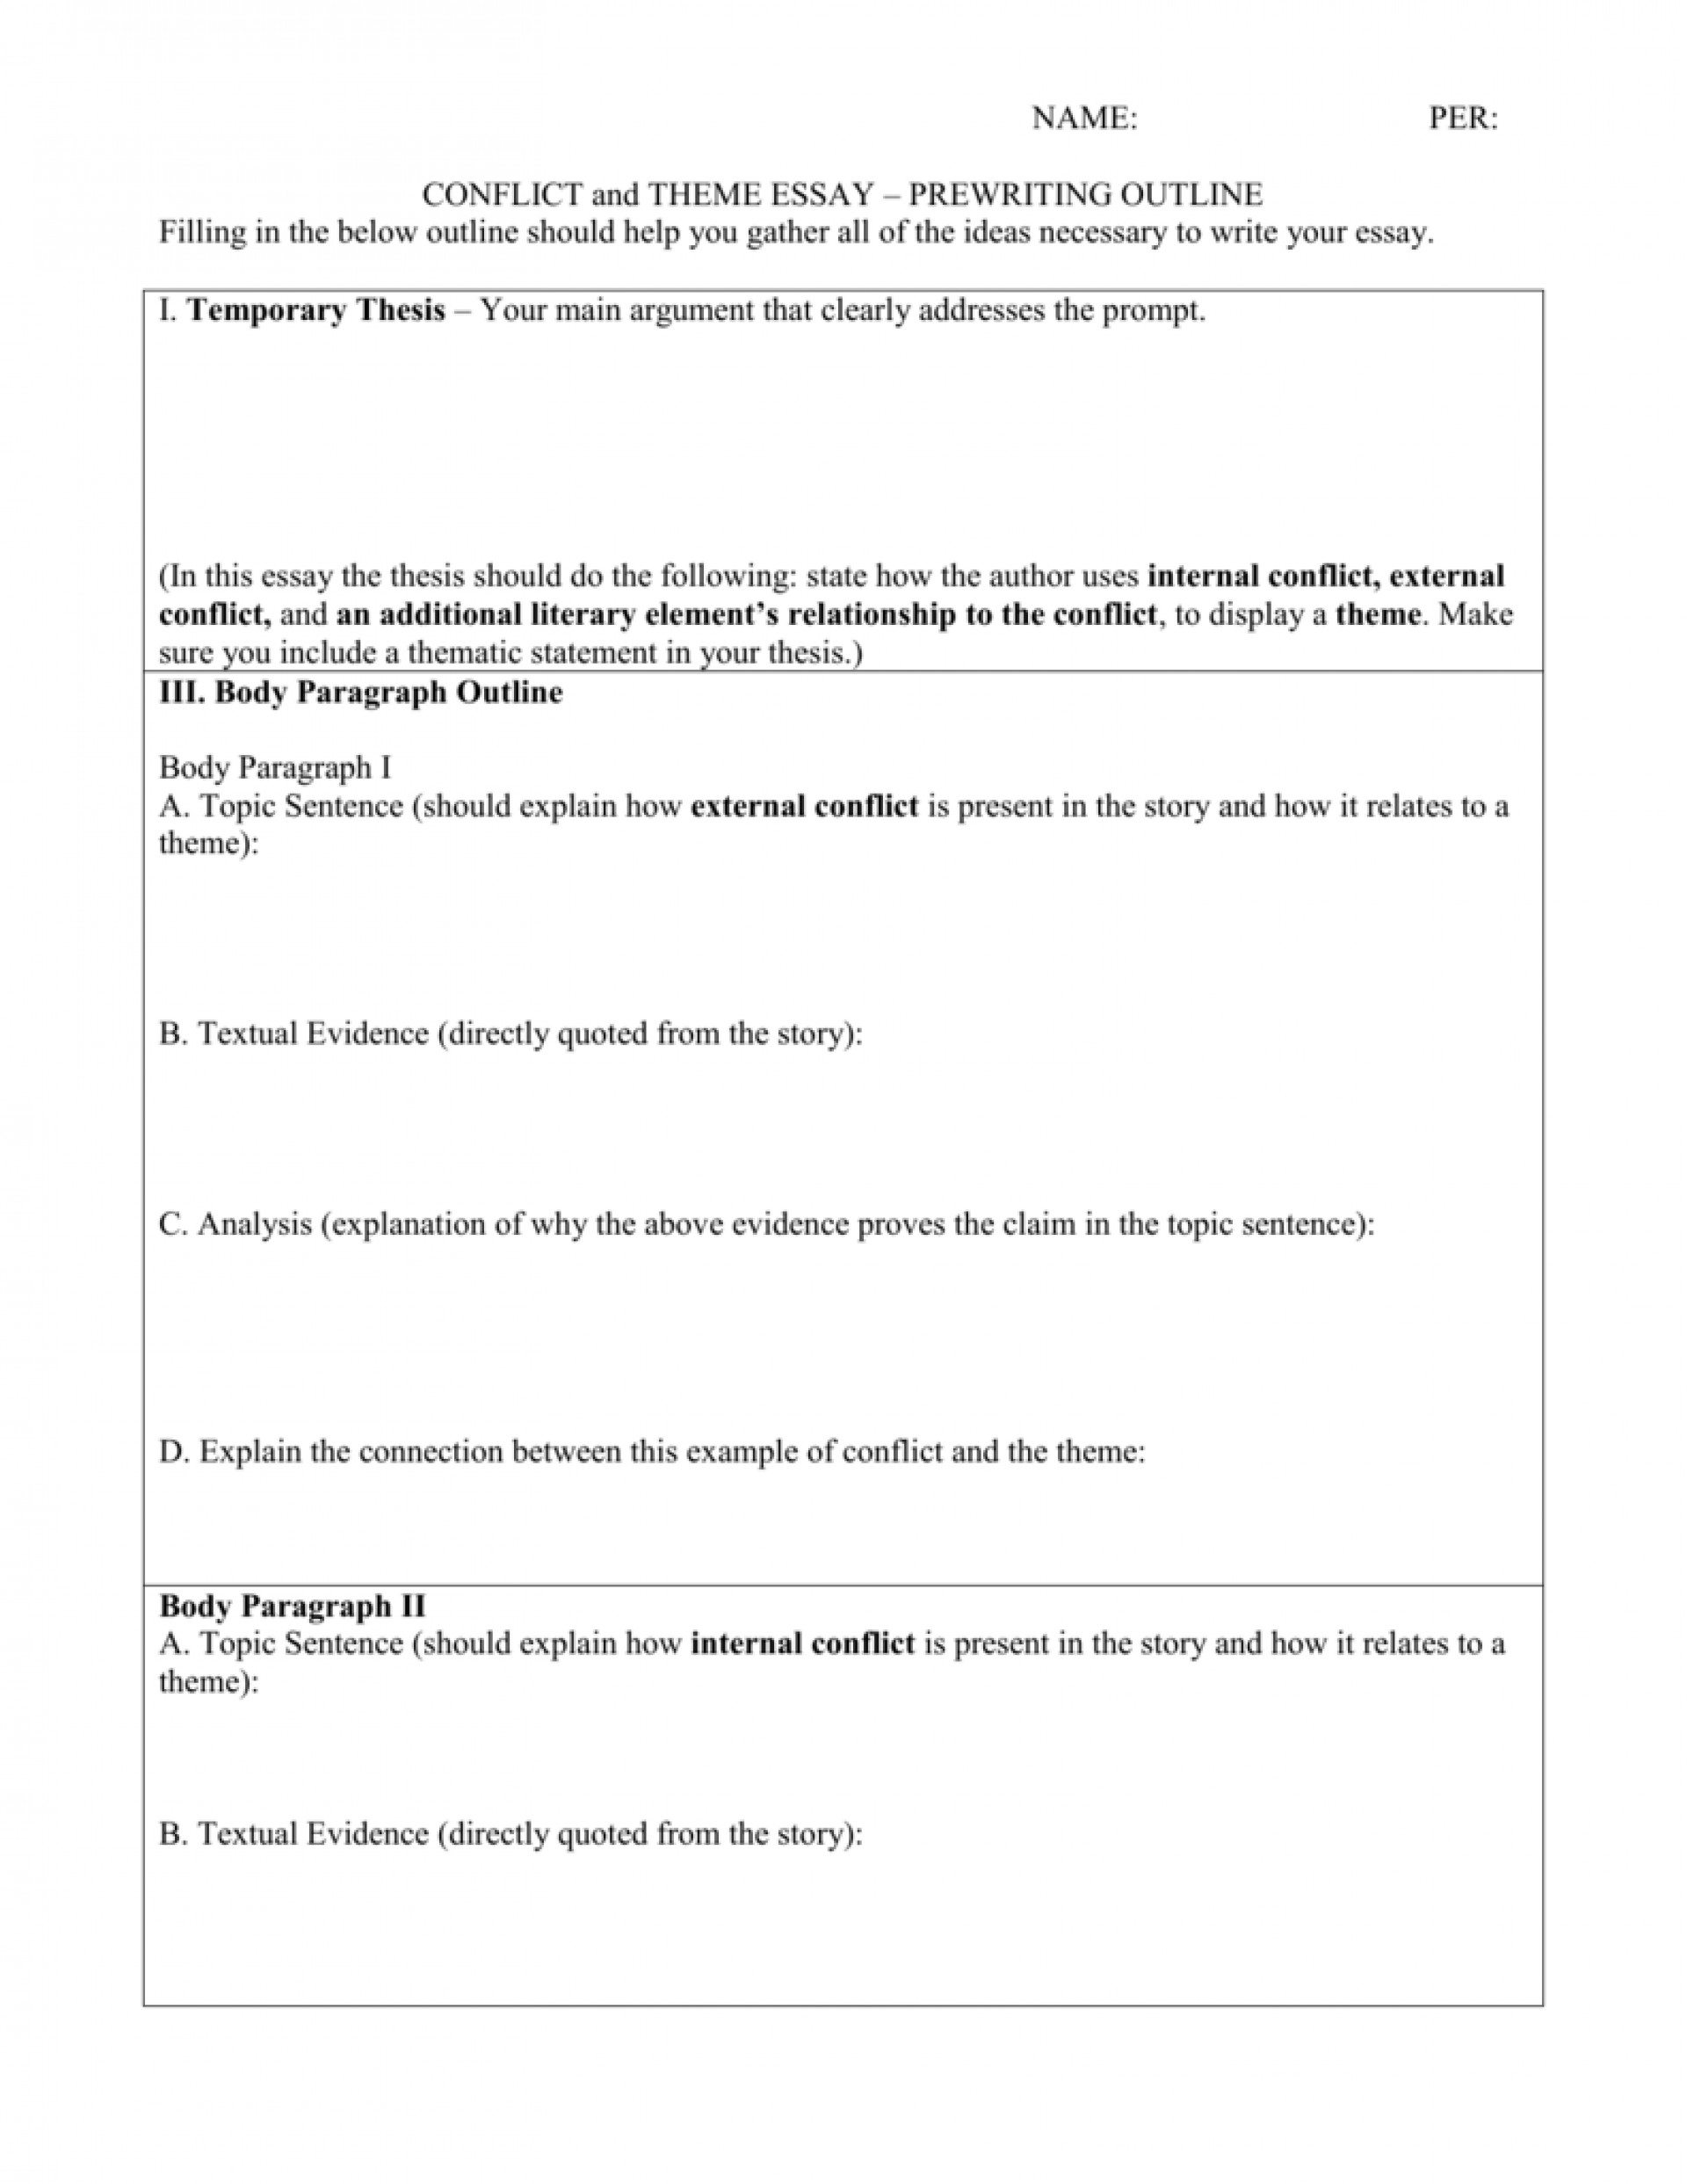 010 Theme Essay 008002500 1 Beautiful Based Examples Conclusion Example Othello Questions 1920